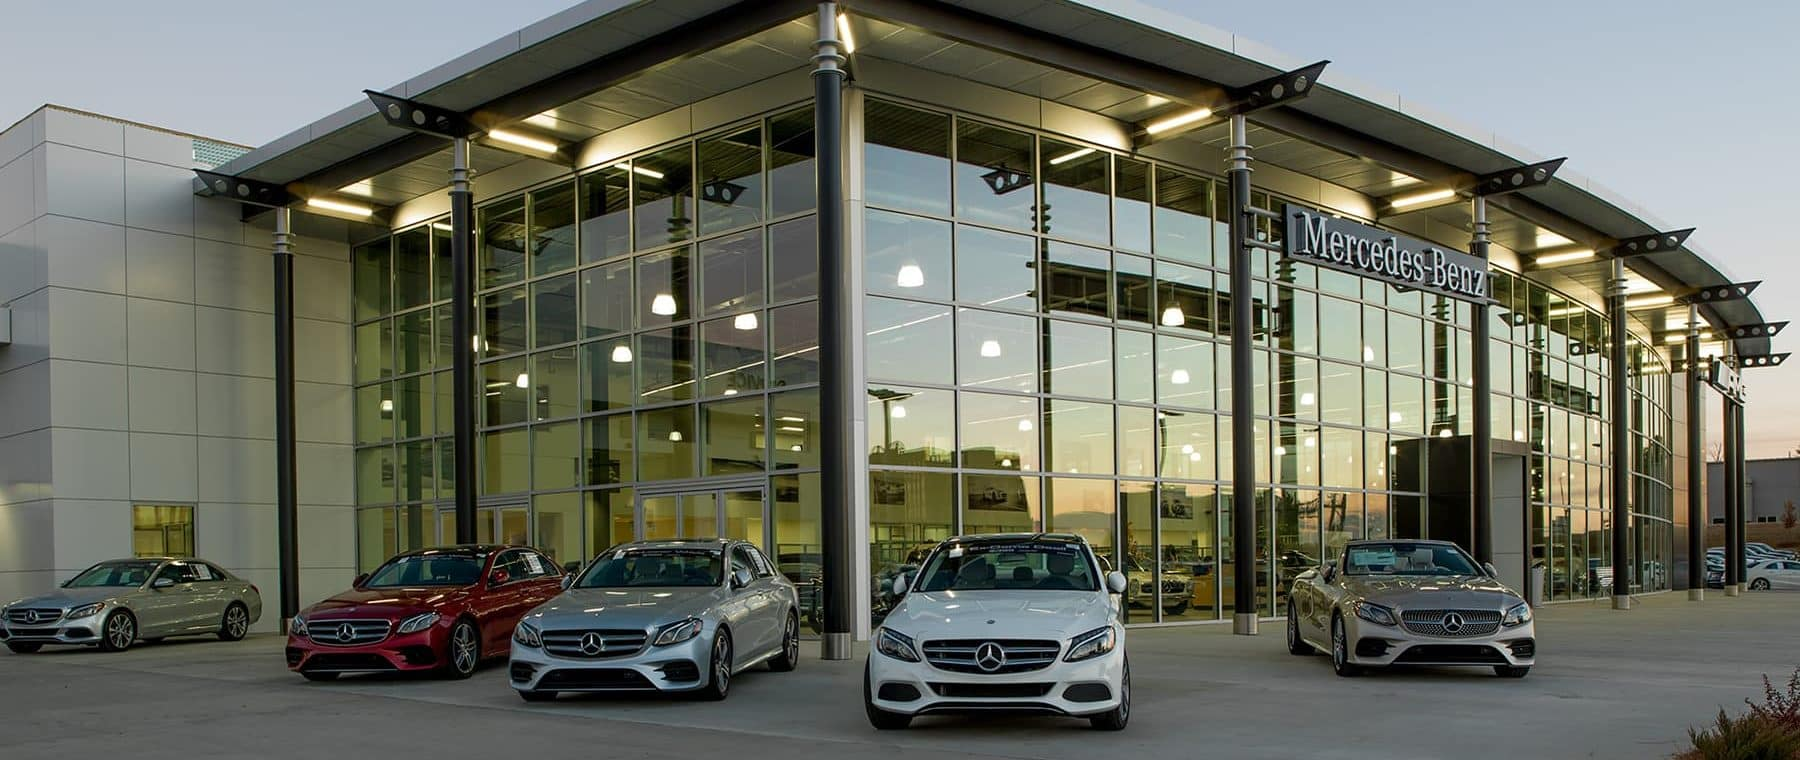 Mercedes benz of jackson mississippi luxury car dealer for Authorized mercedes benz service centers near me